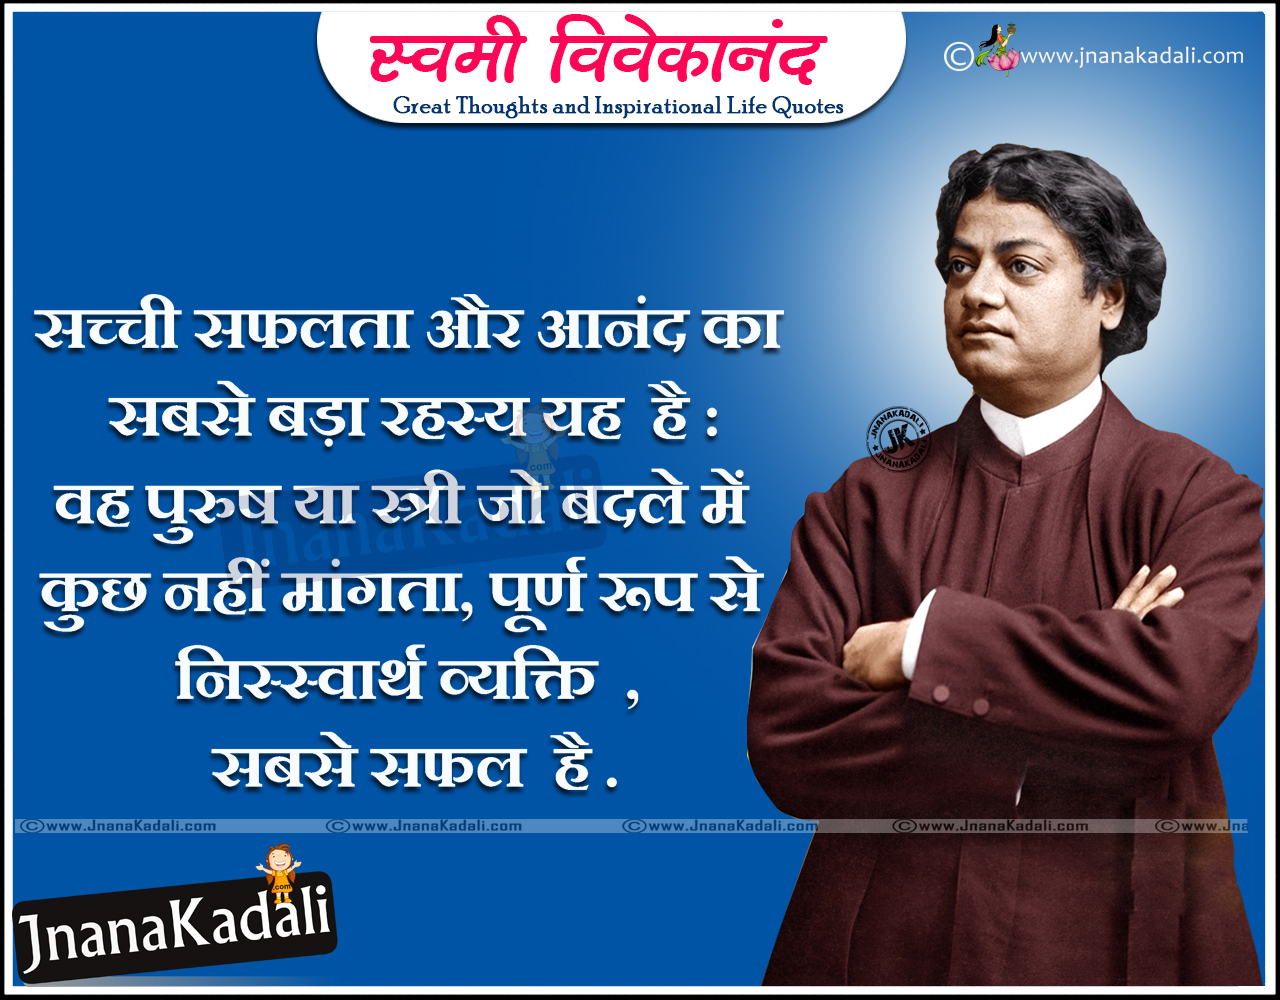 Swami Vivekananda Success Quotes In Hindi: Swami Vivekananda Hindi Motivational Quotes For Youth In